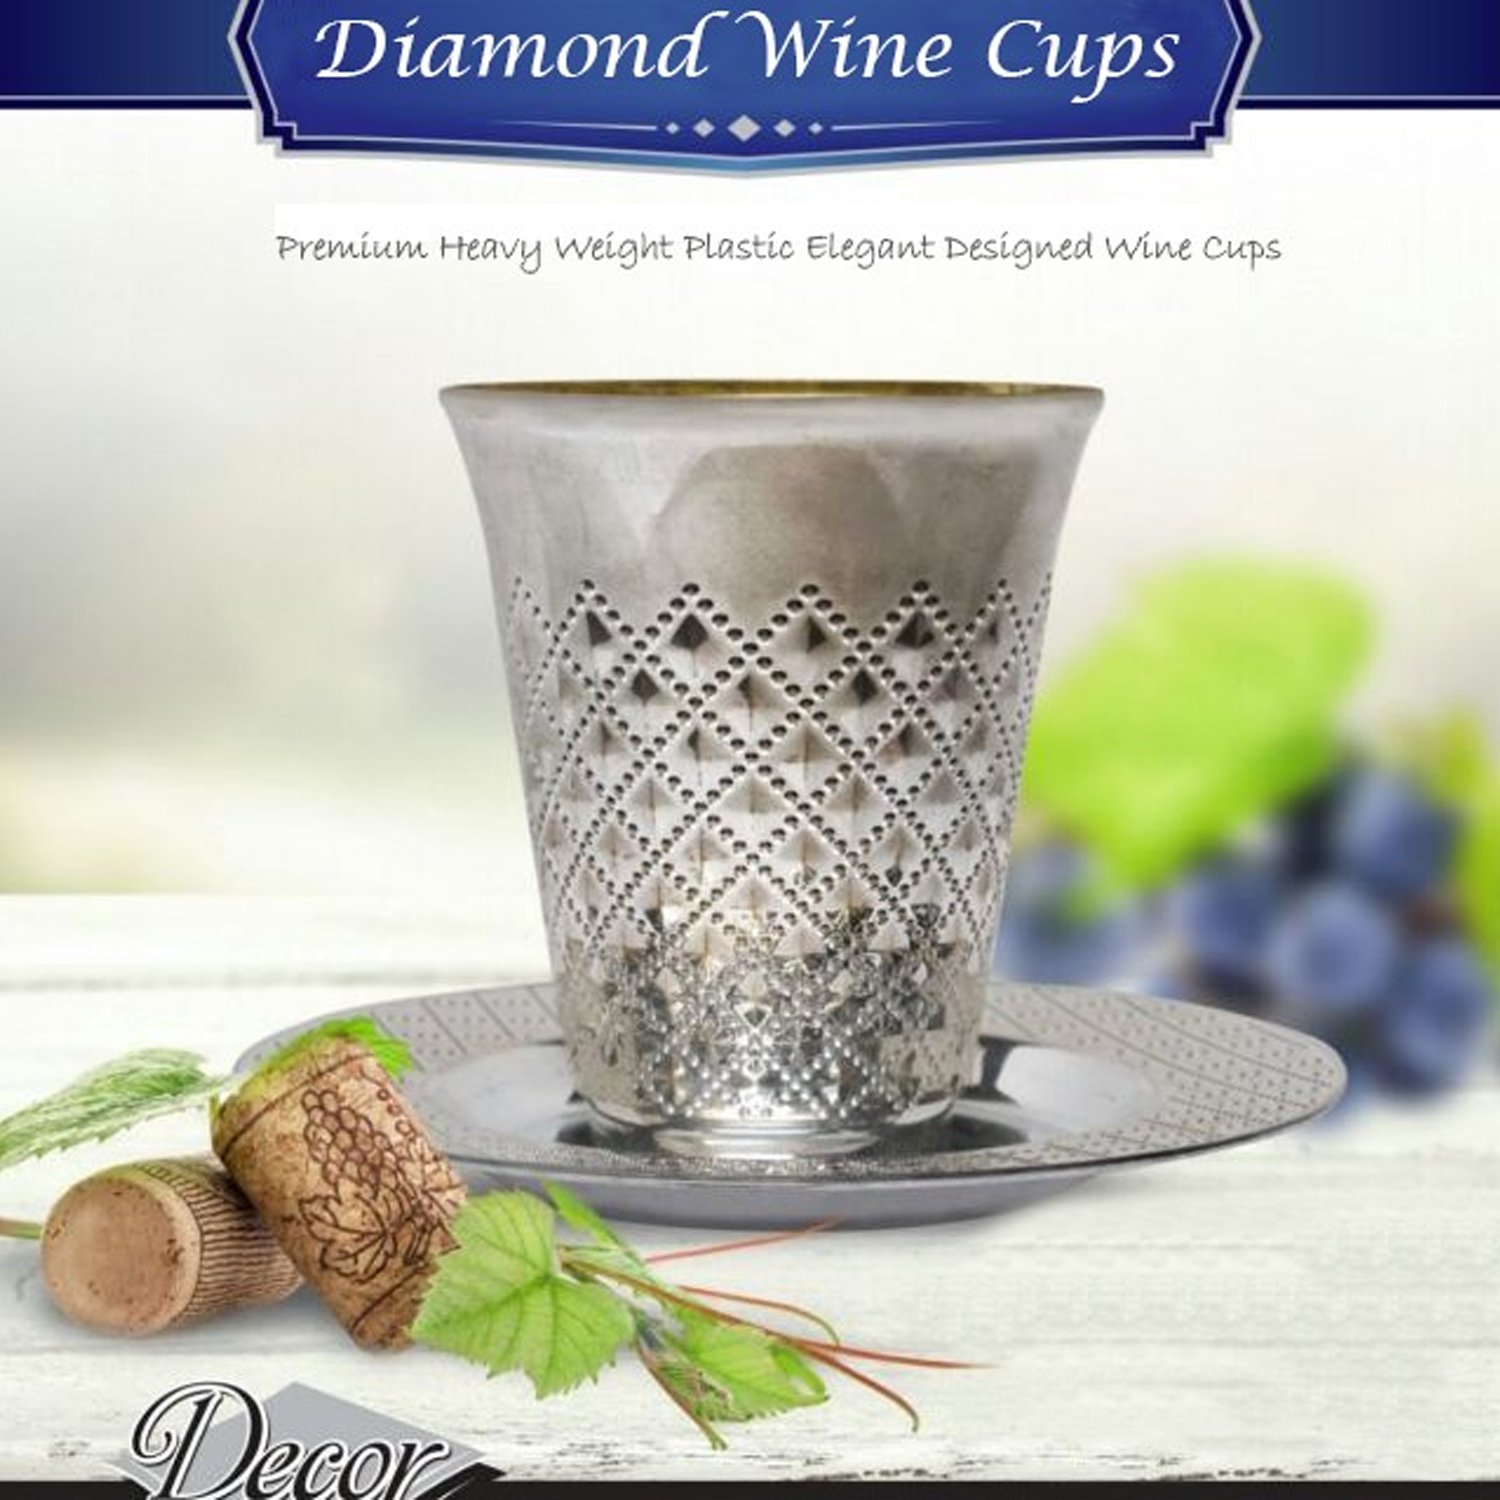 Decor Diamond Kiddush Disposable Wine Cups and Saucers Silver 10ct